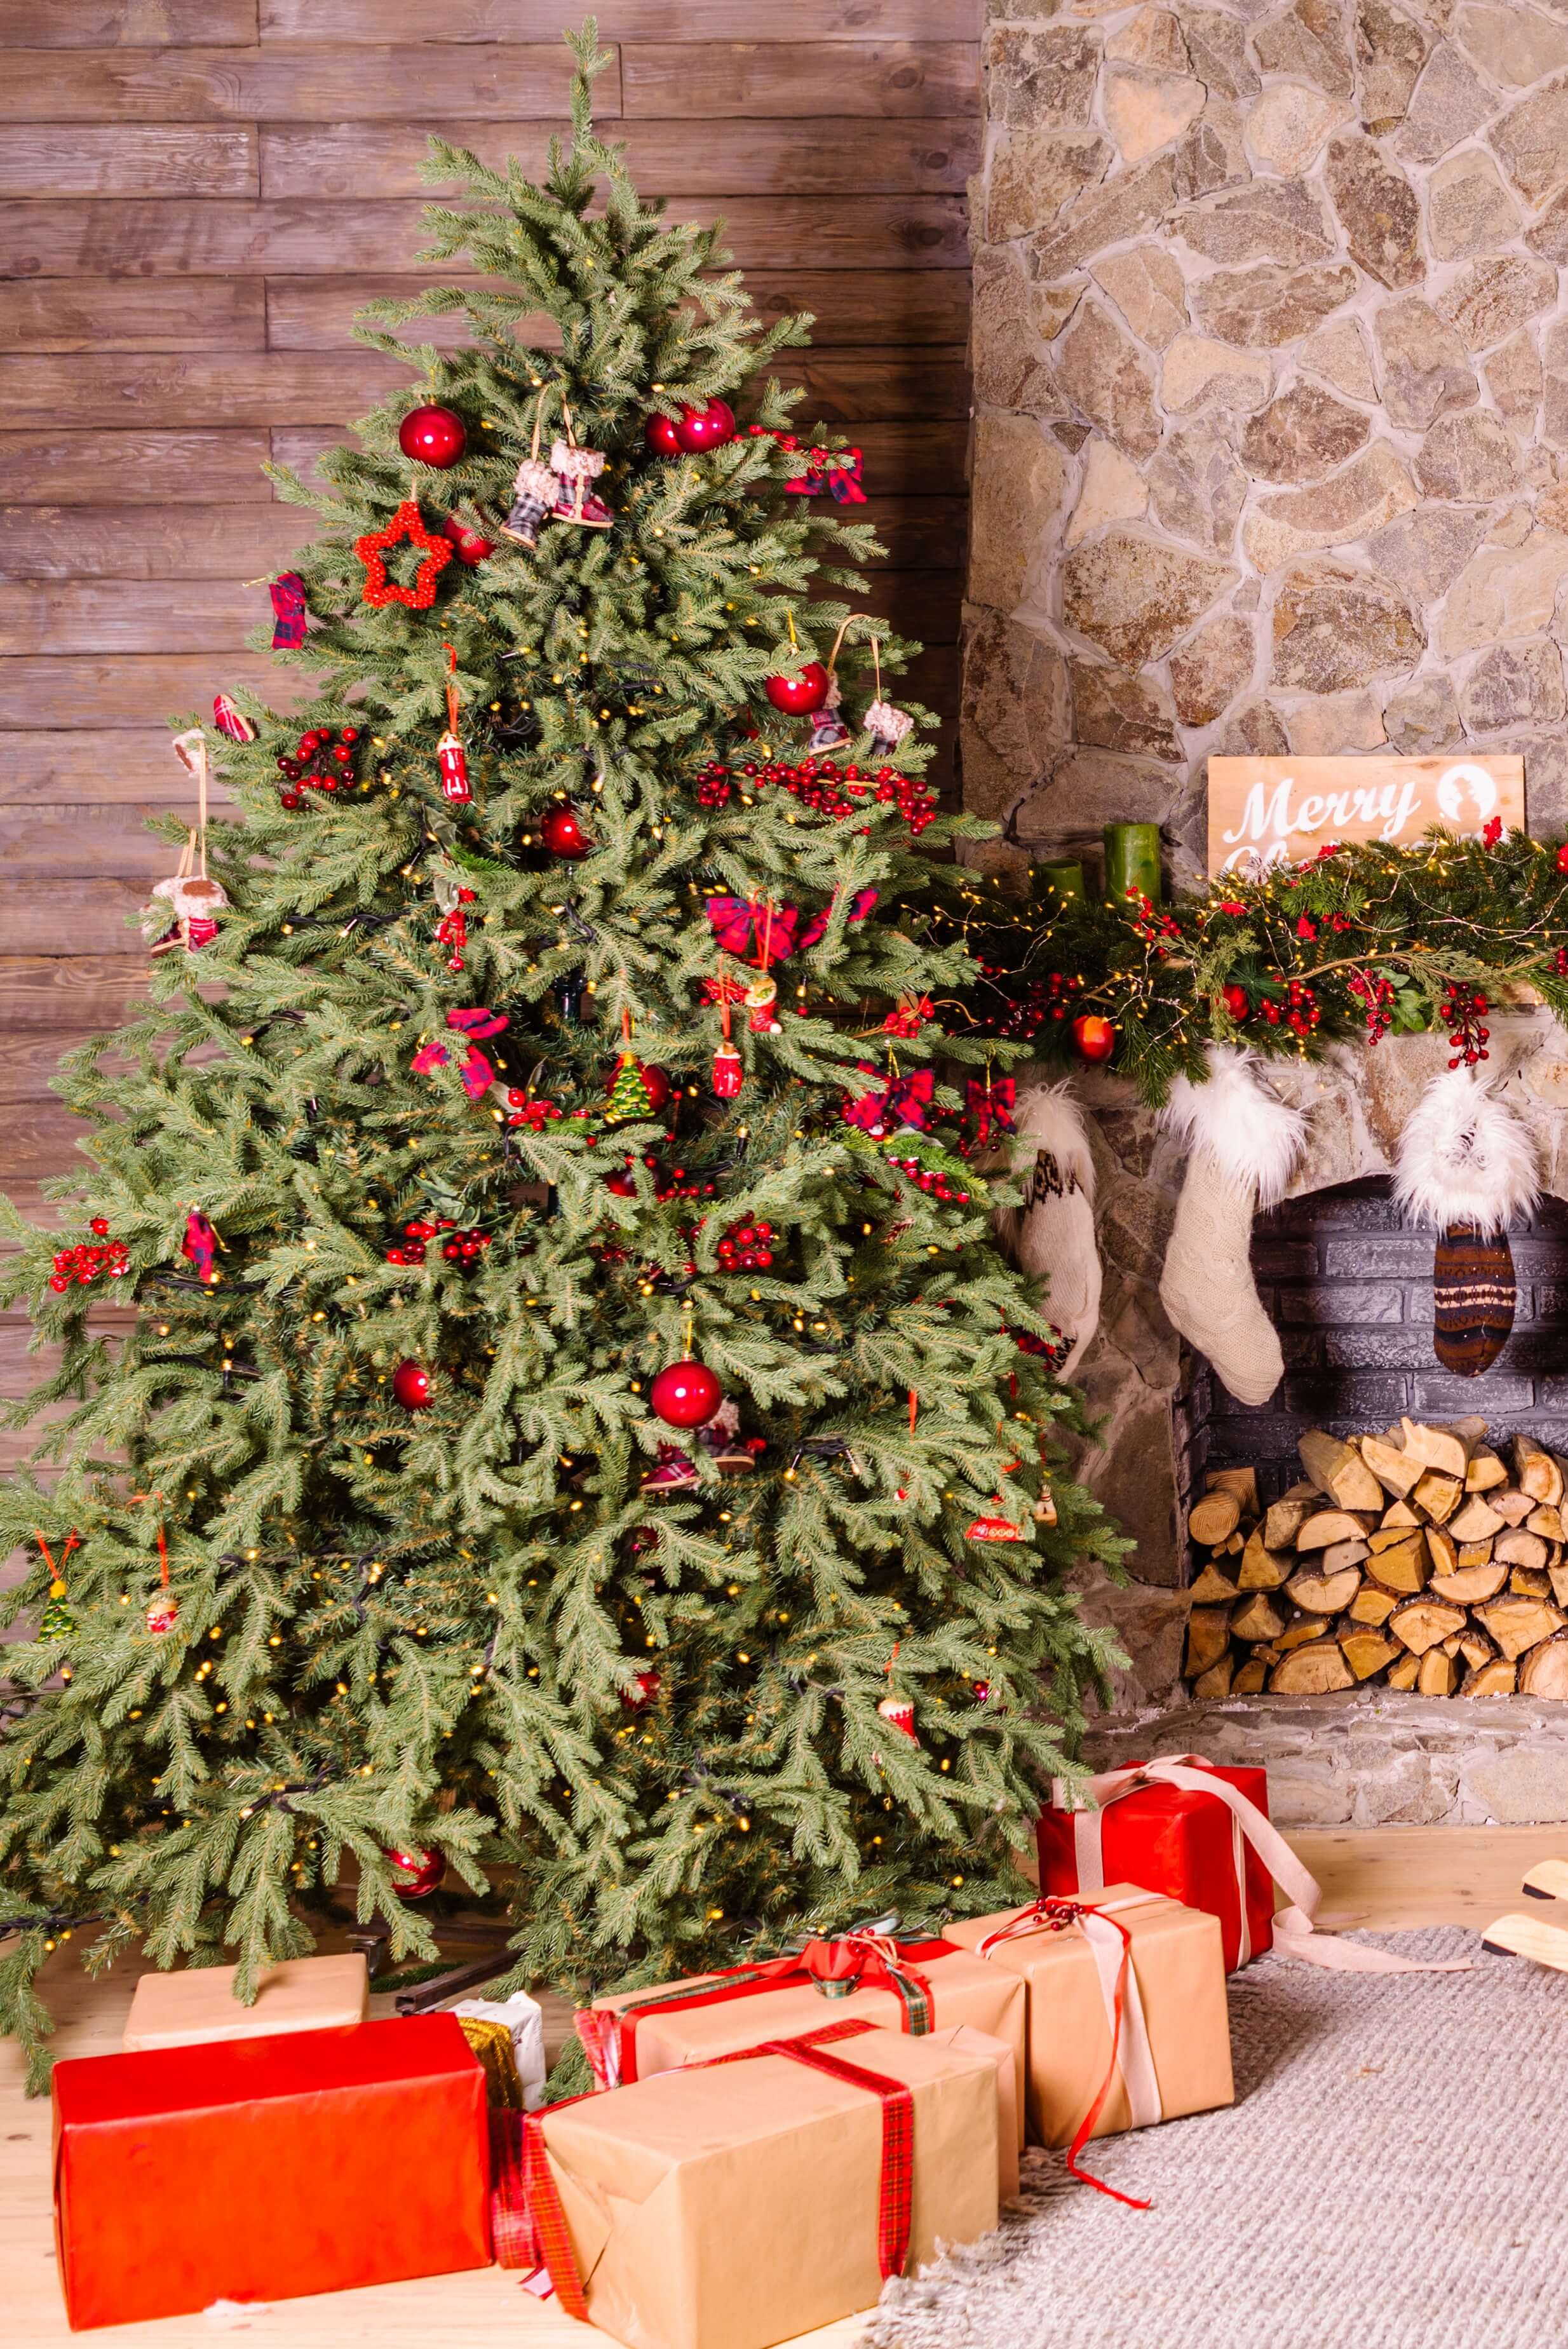 Sustainable Alternatives to Christmas Trees